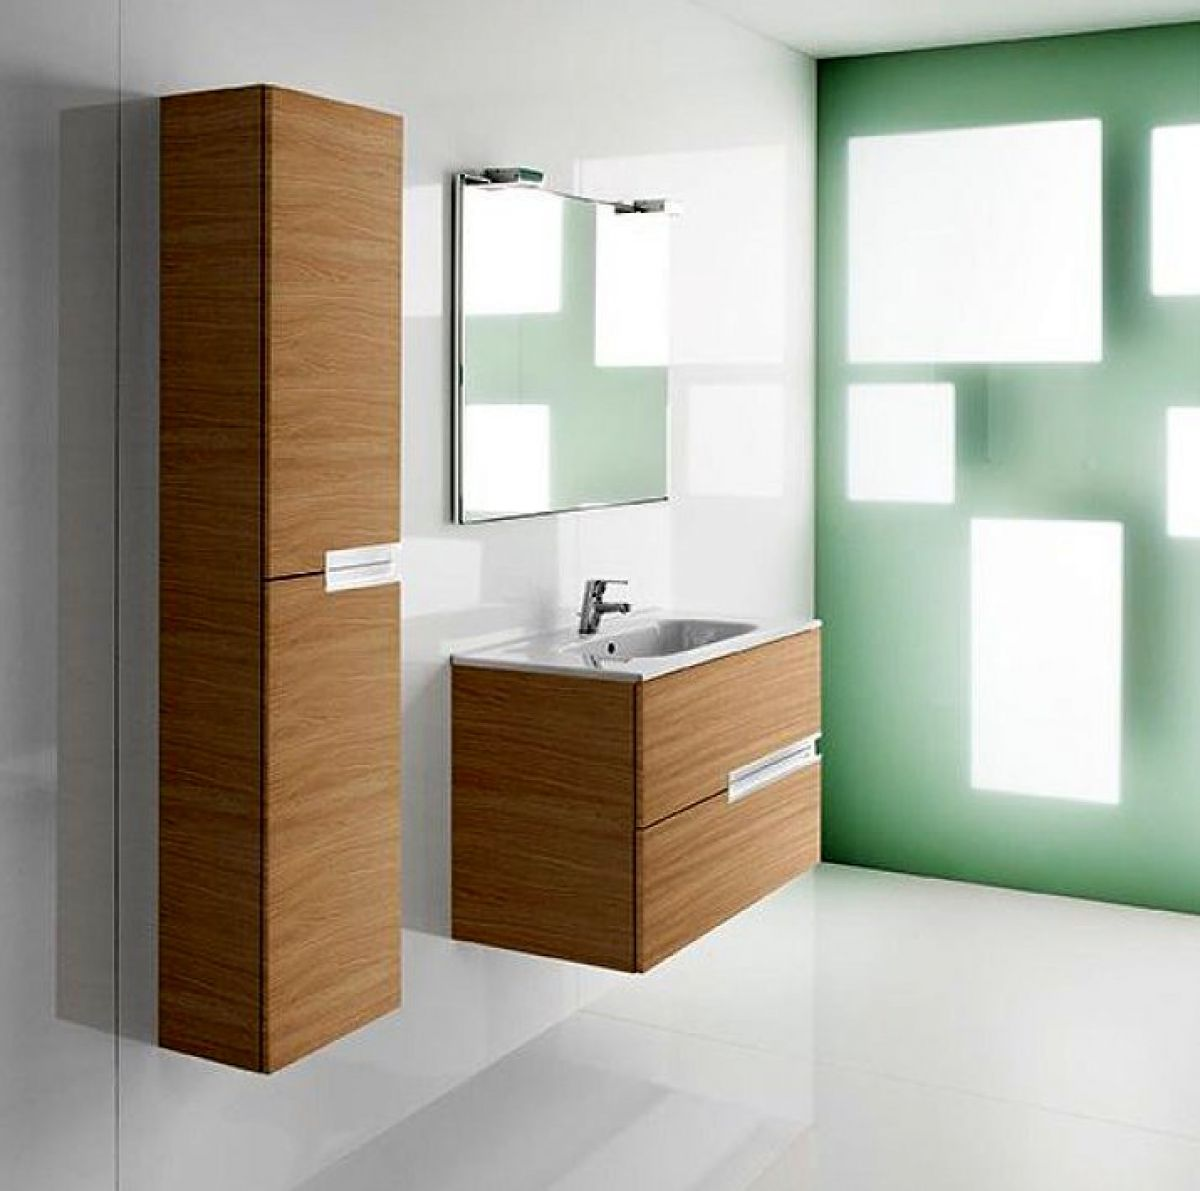 roca victoria n tall column unit uk bathrooms